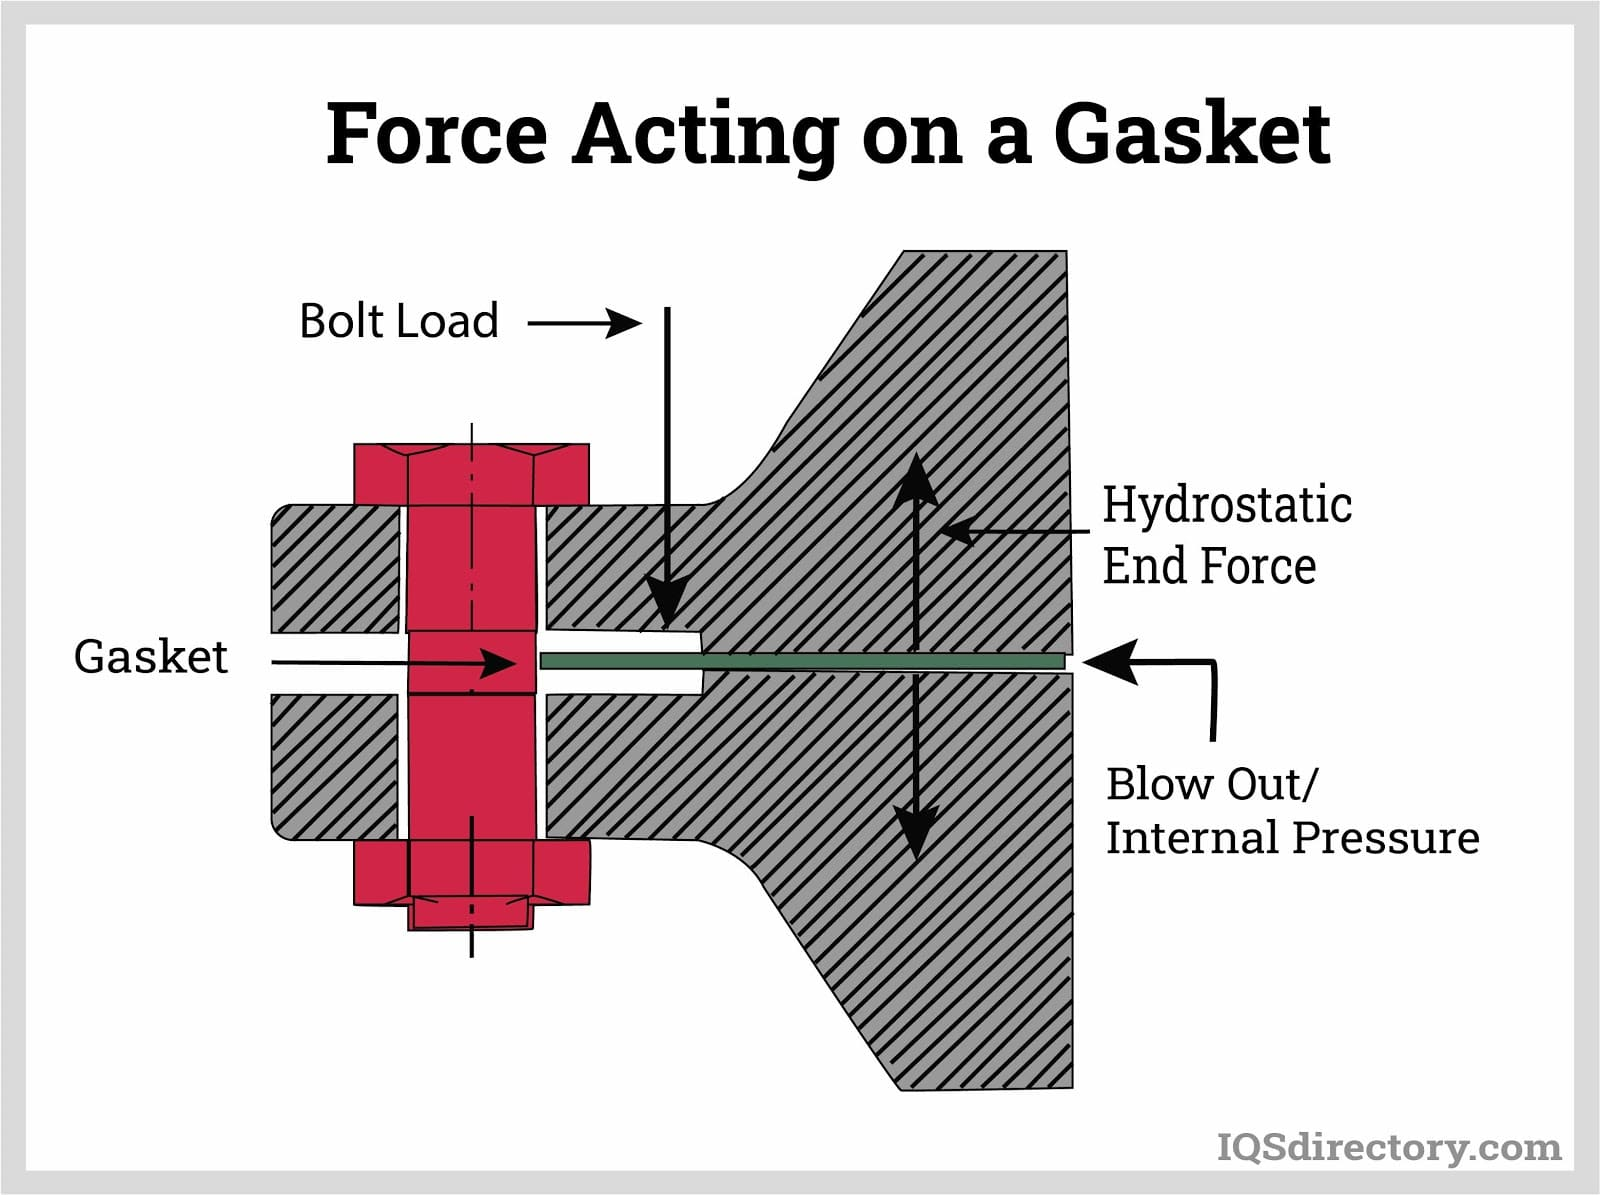 Force Acting on a Gasket